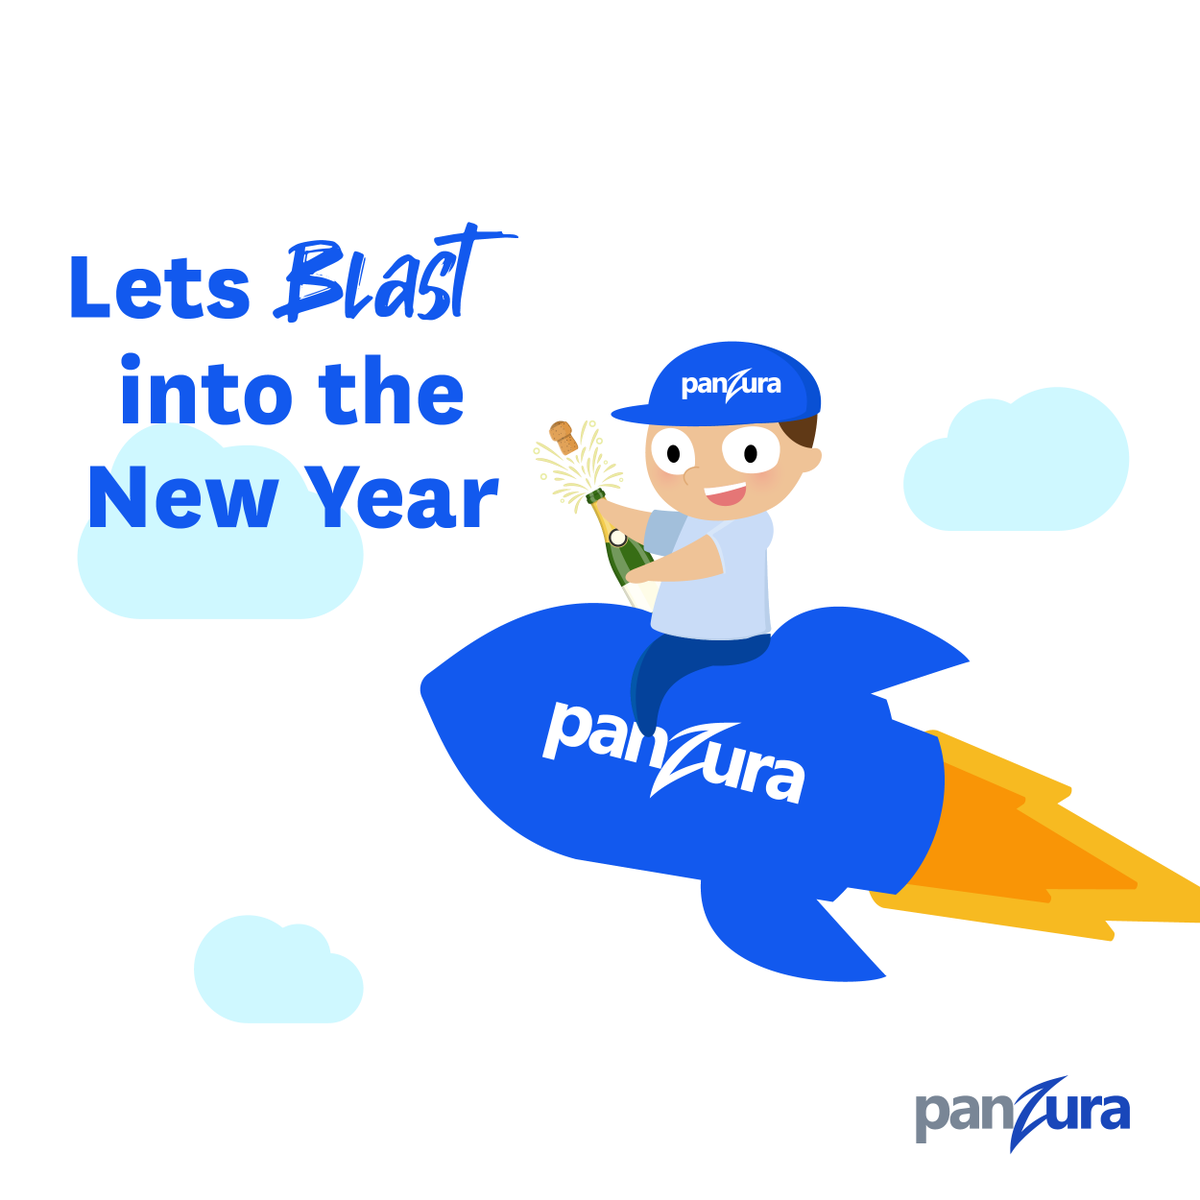 Happy New Year to everyone from Panzura! 🎉 🍾  We look forward to seeing what 2021 brings to all of us! 🗓 🙌 https://t.co/Y0qGaB47G4